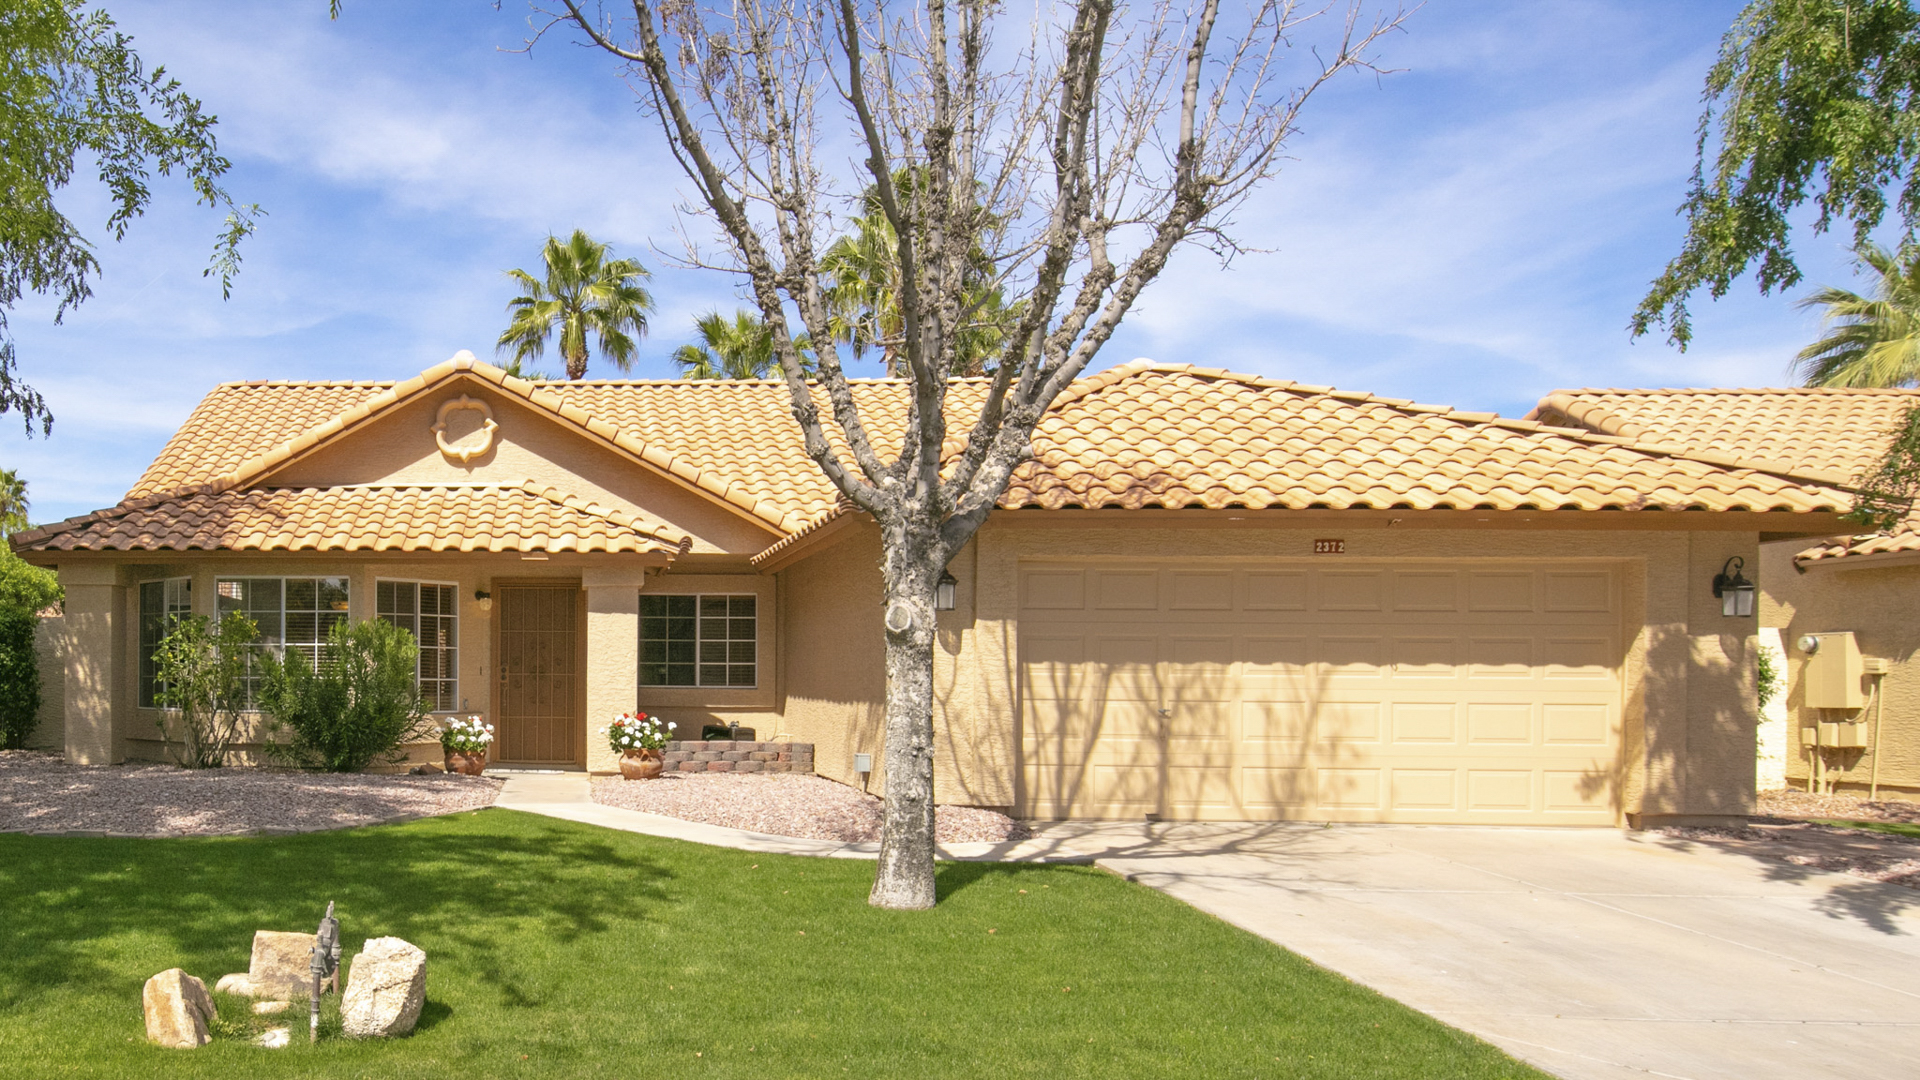 Under Contract! 2372 W Redwood Dr. Chandler, AZ 85248  - Waters Edge at Ocotillo | Amy Jones Group